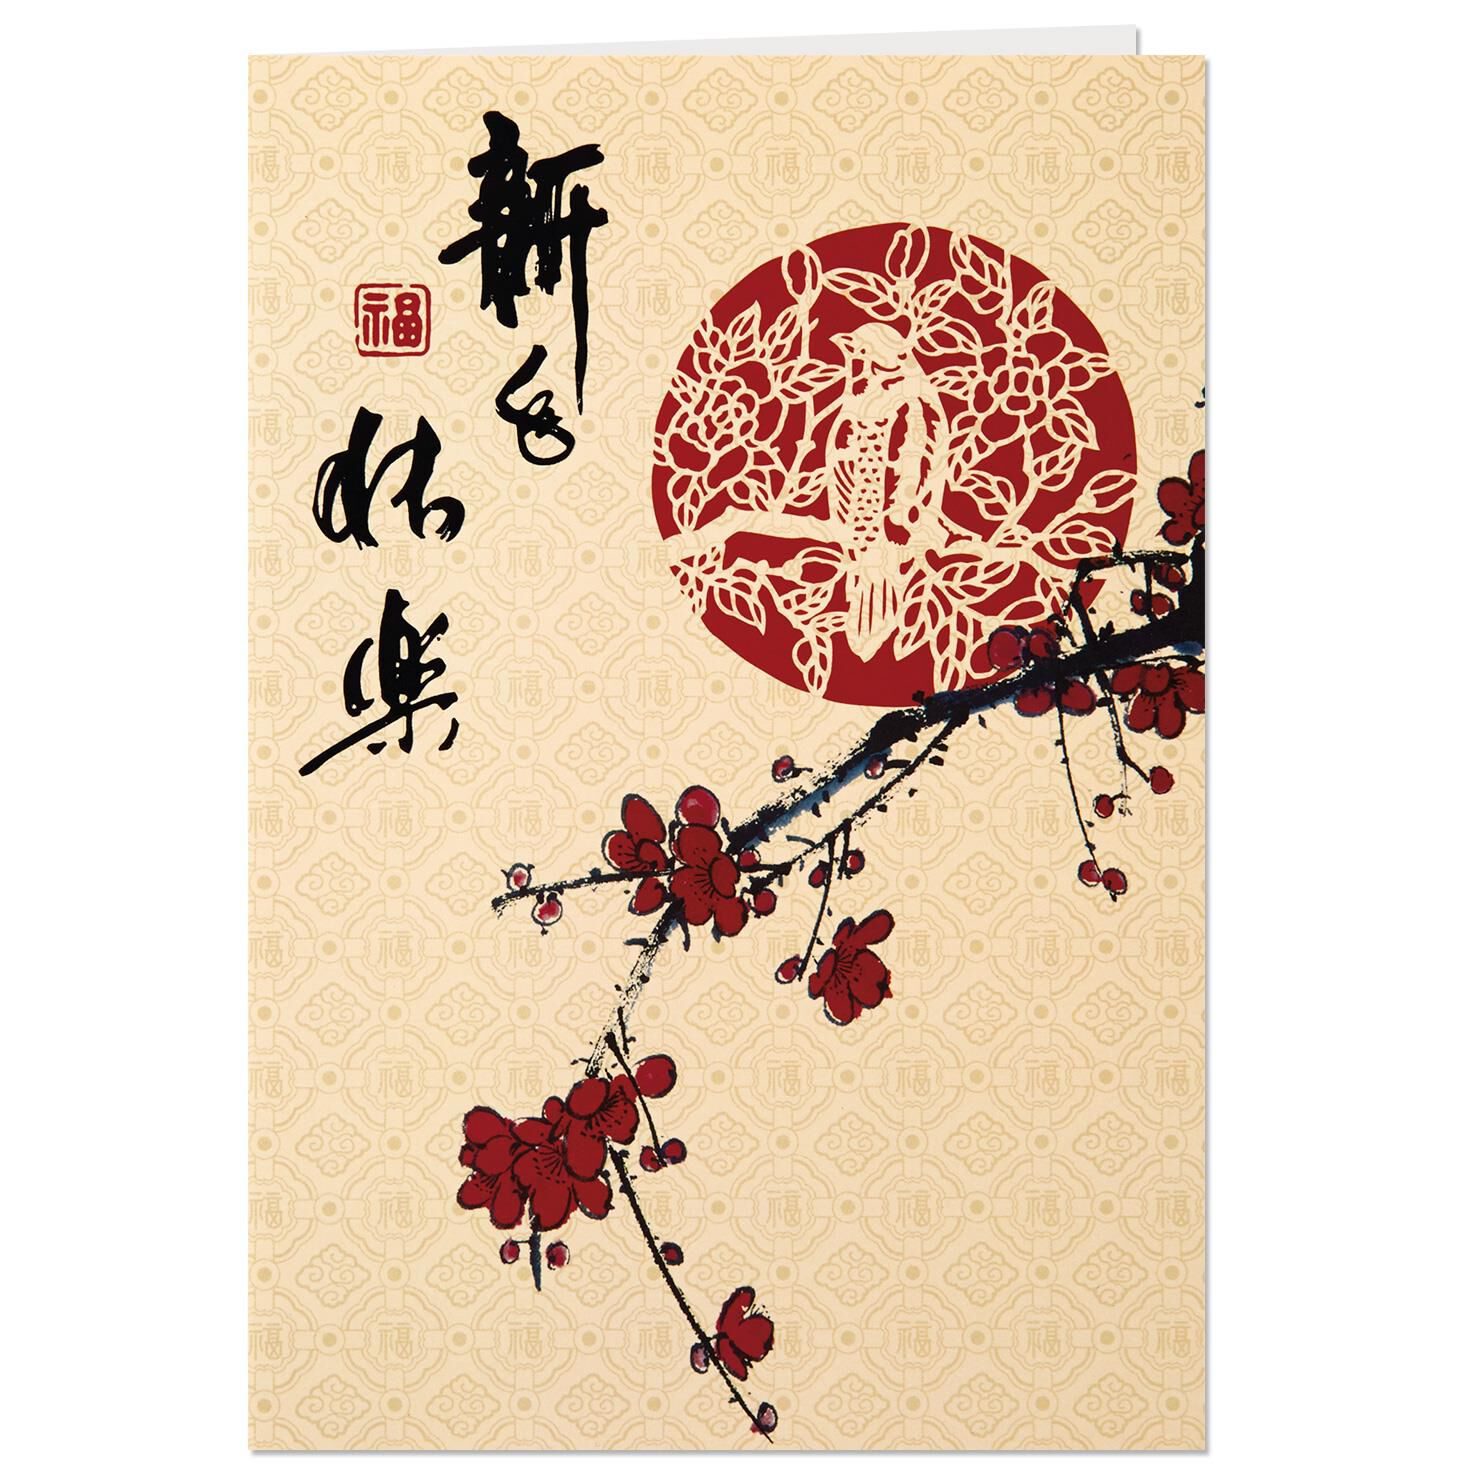 Plum Blossoms 2018 Lunar New Year Card Greeting Cards Hallmark